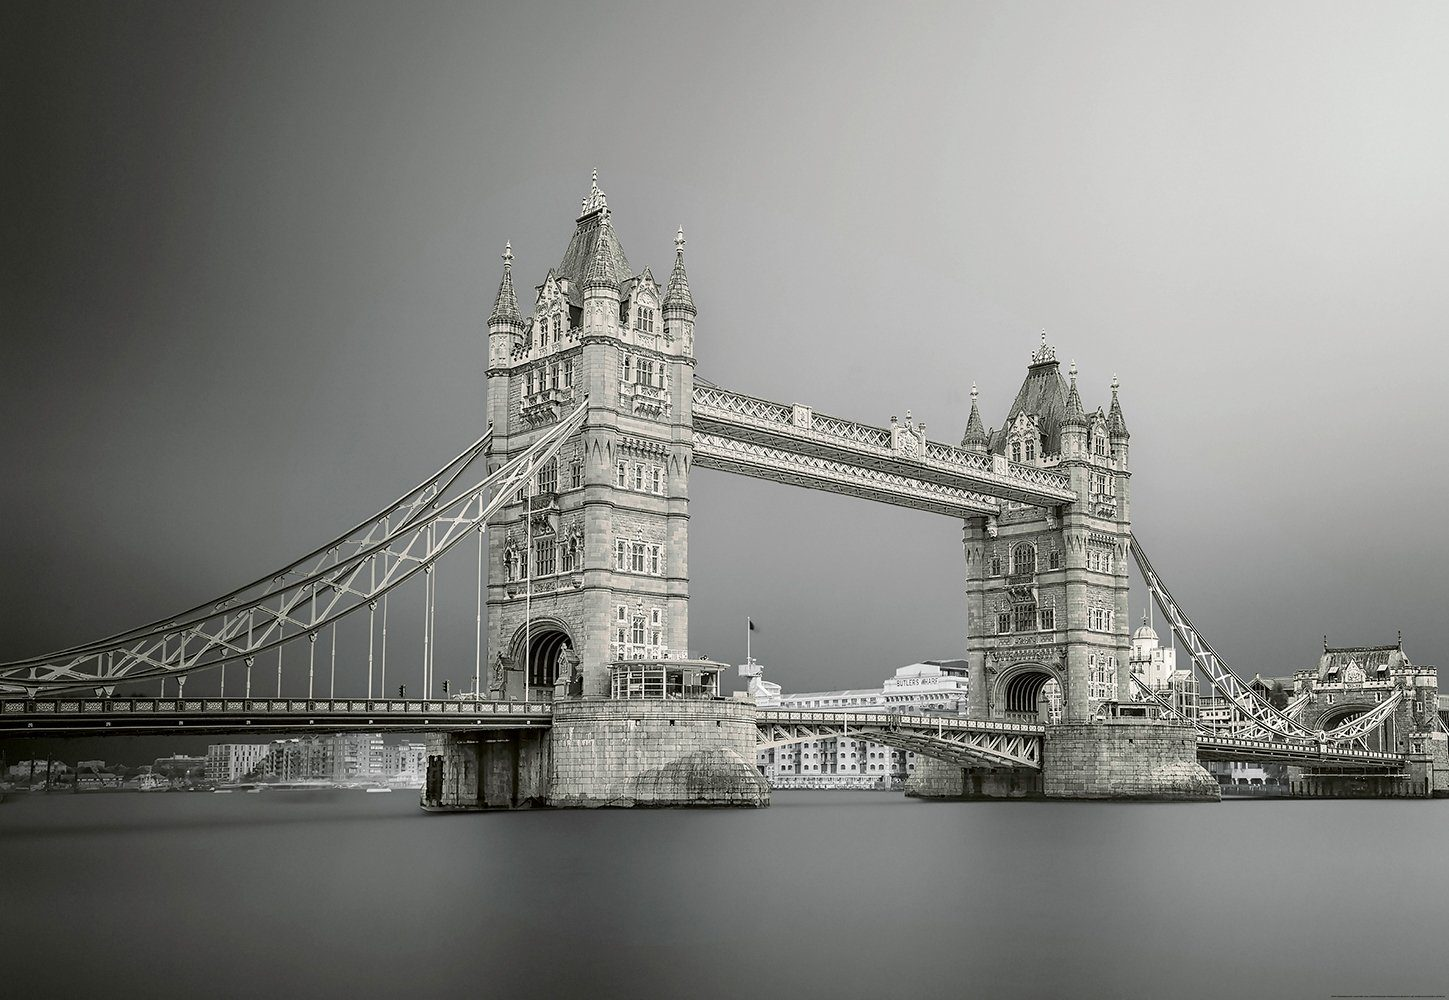 IDEALDECOR Fototapete »Tower Bridge London«, Vlies, 4 Bahnen, 368 x 254 cm